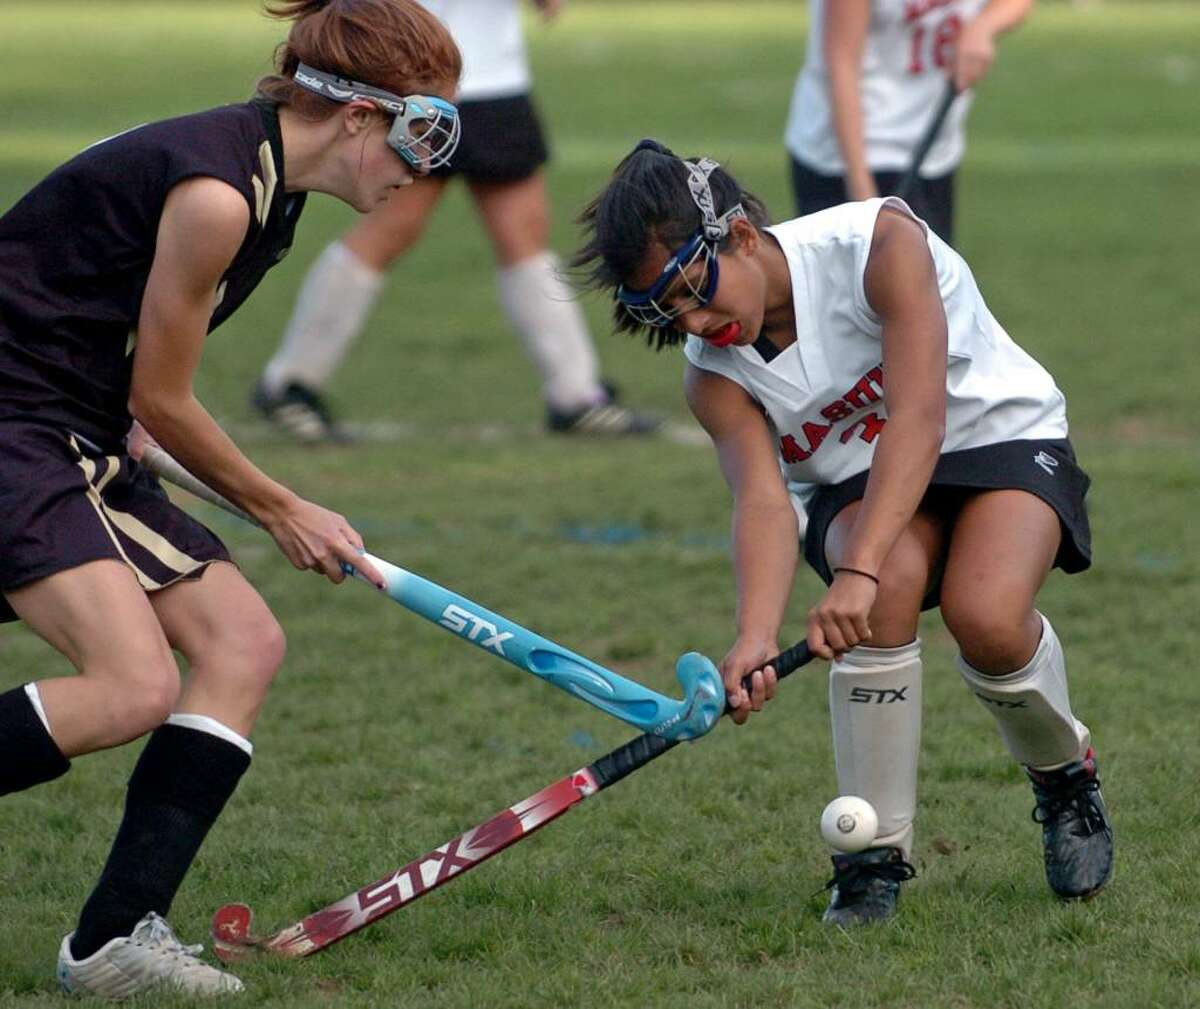 Masuk's #3 Simone Romano, right, tries to corral the ball as Barlow's #2 Hope Ianiri converges, during game action in Monroe, Conn. on Tuesday Oct. 06, 2009.